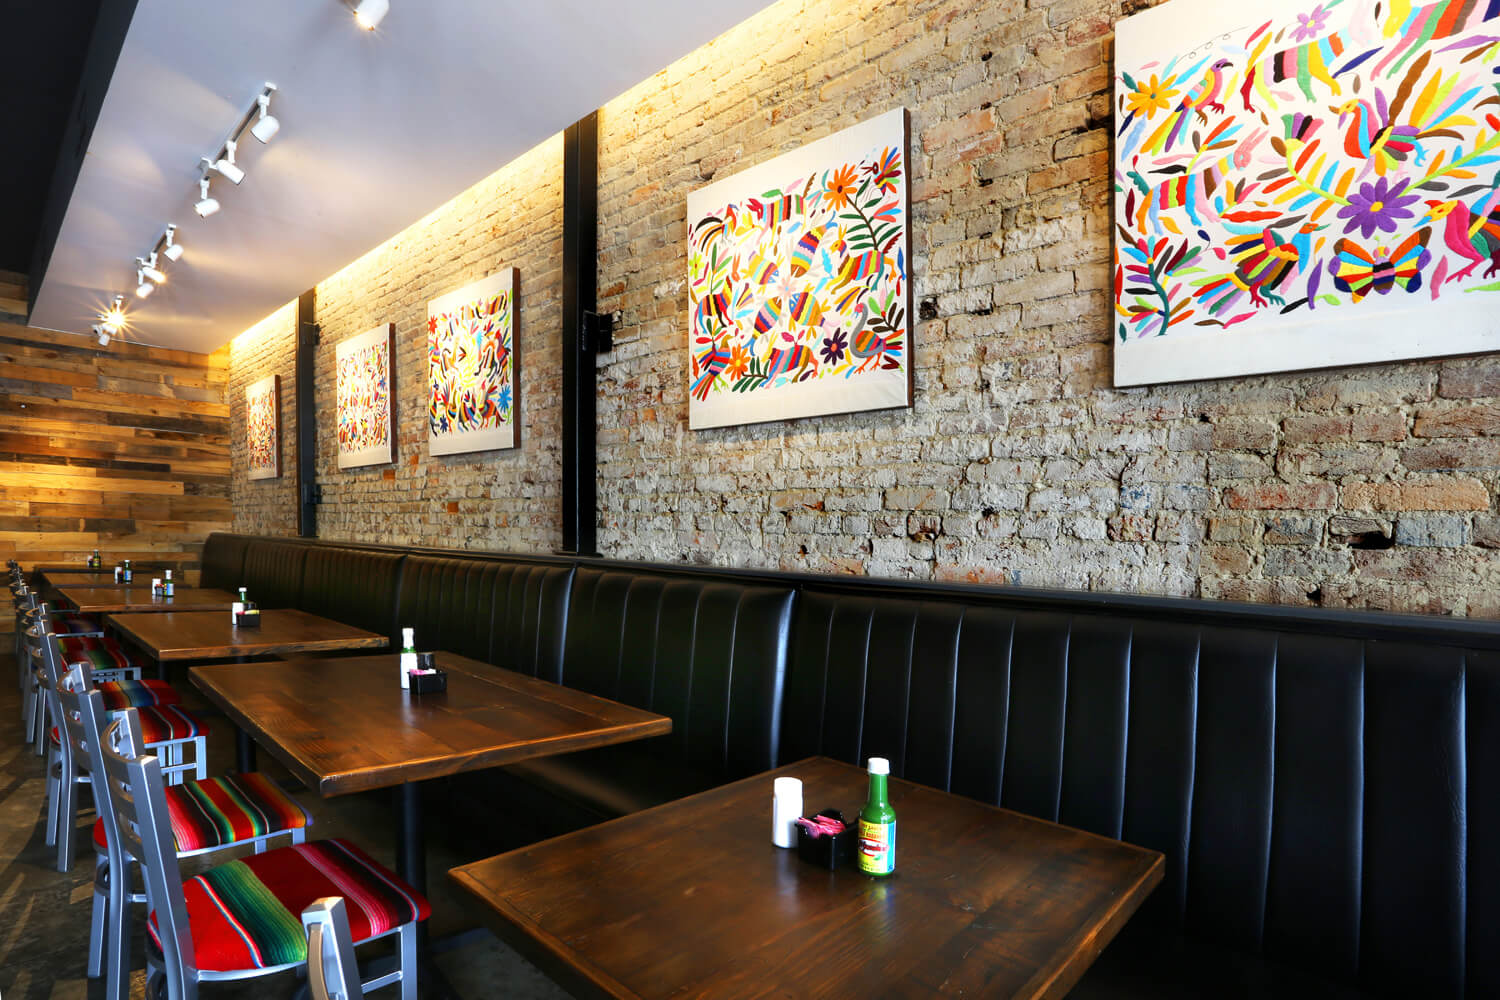 Cuco's Mexican Café Restaurant Designed by Foshee Architecture – View of Booth Seating